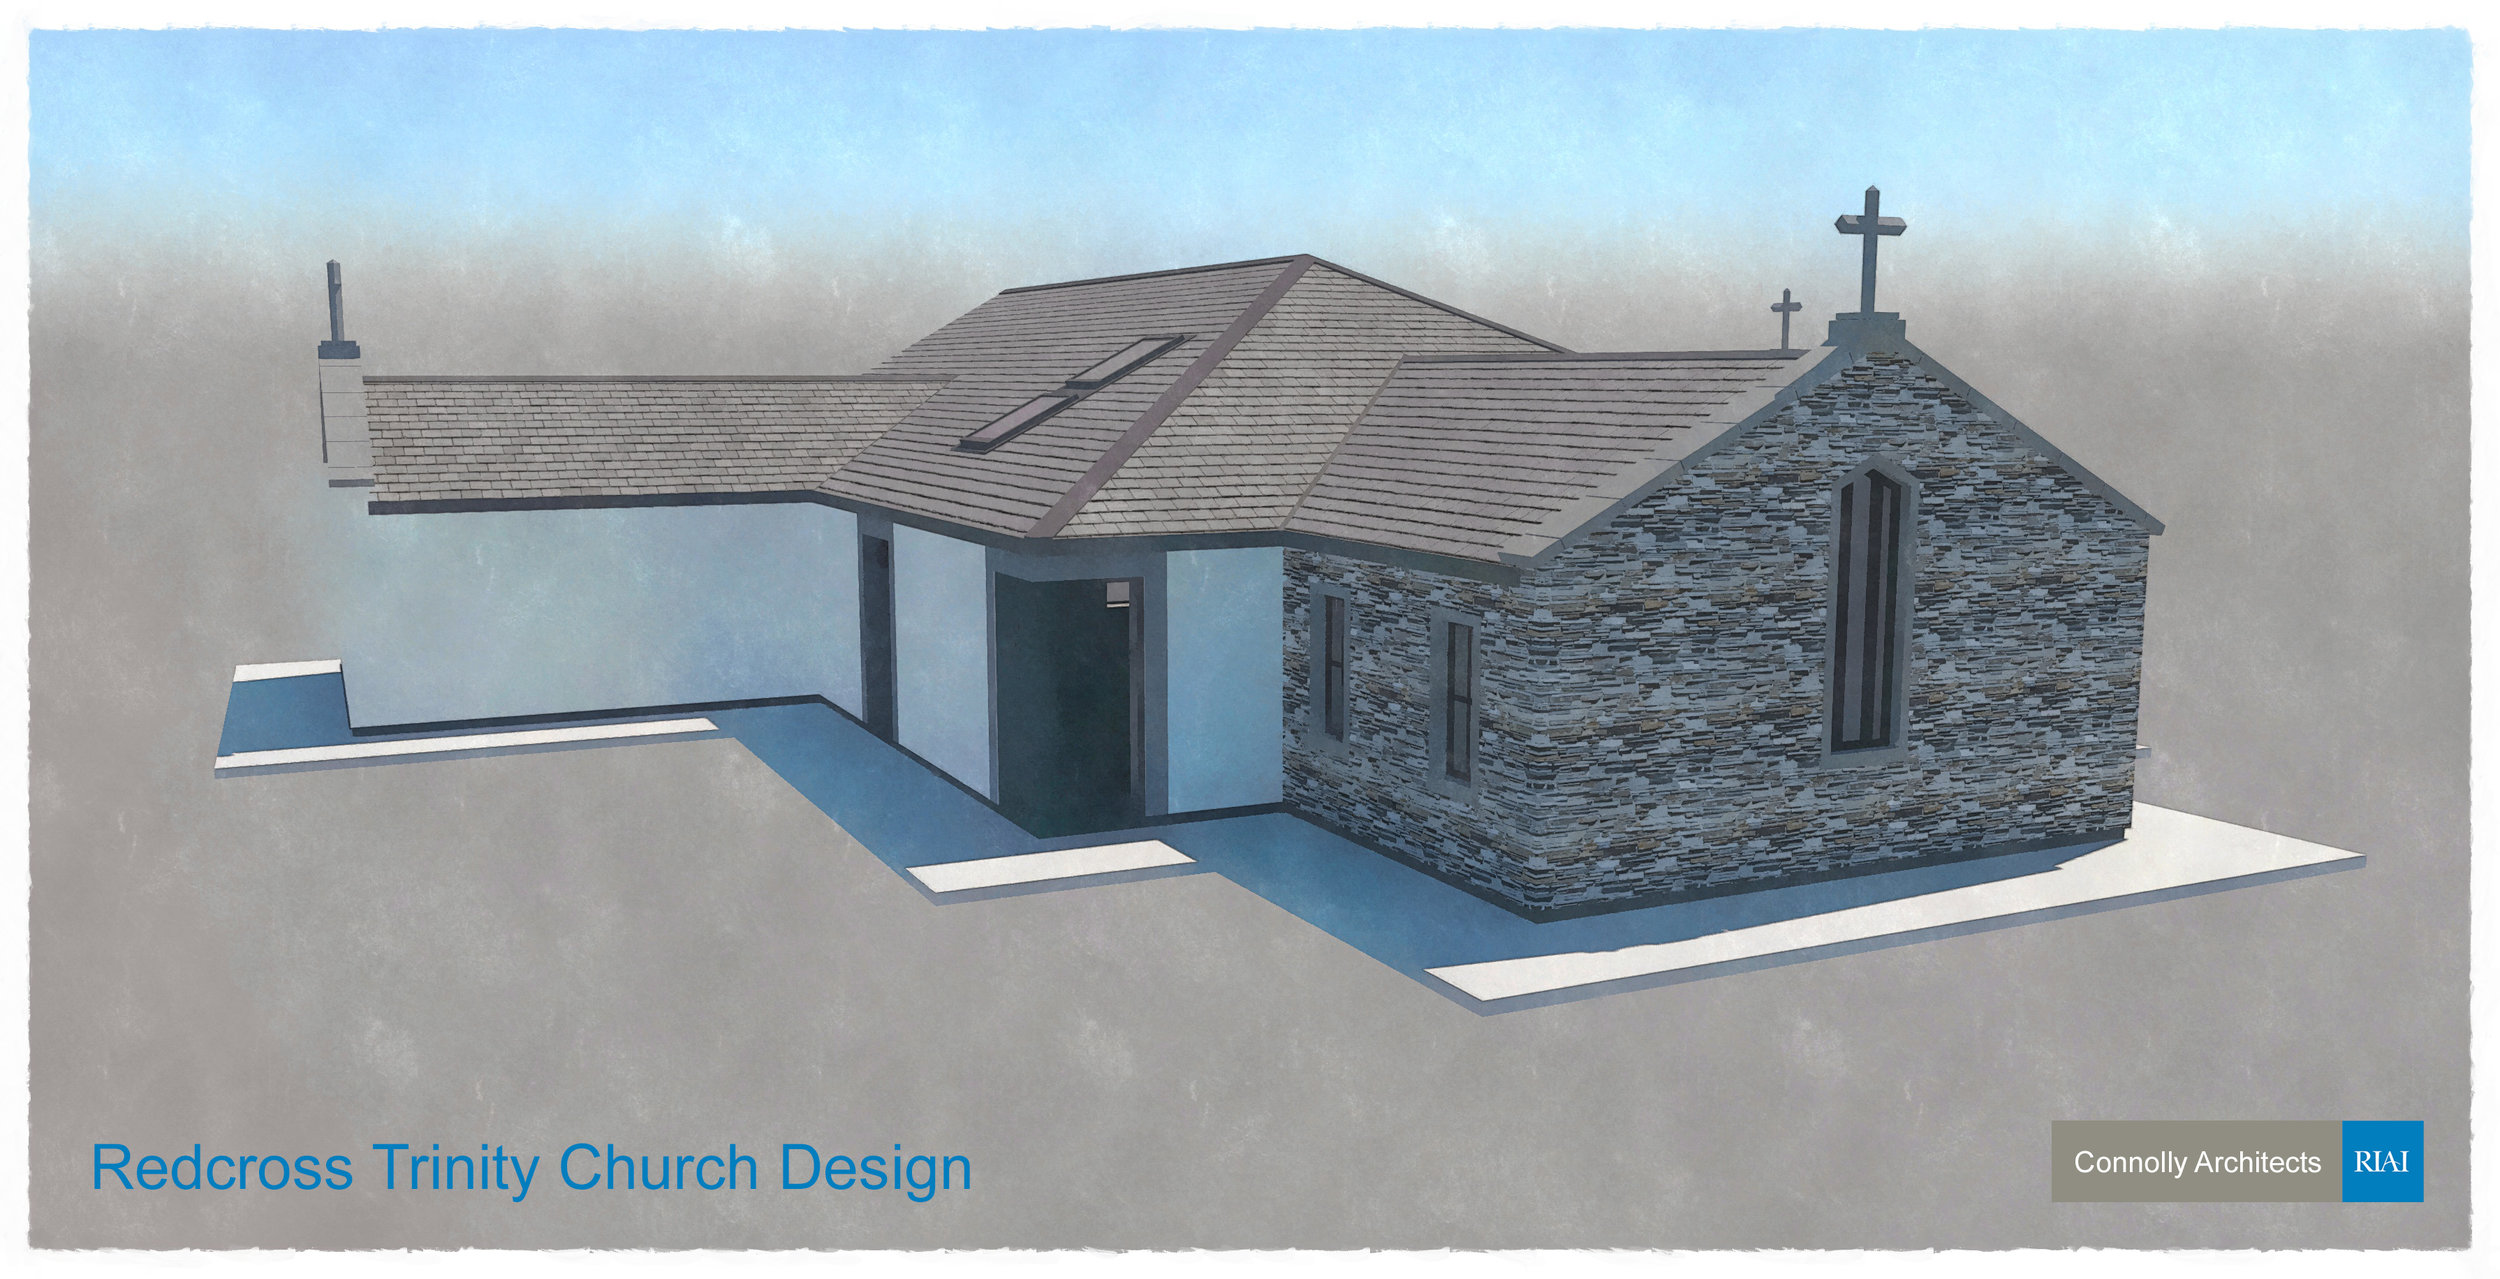 Our proposed new Church